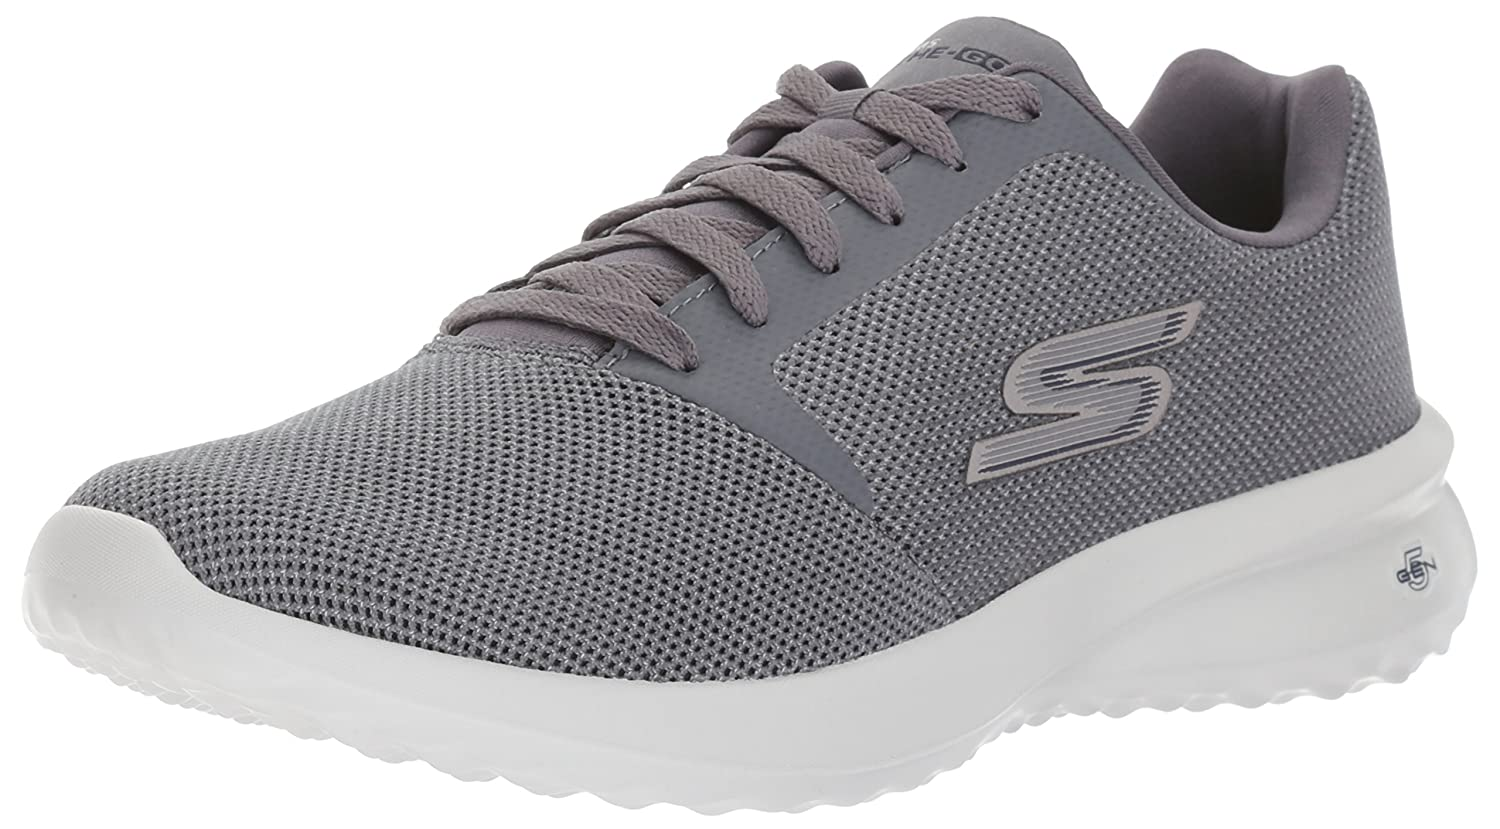 timeless design 2c645 141cb Skechers Men s On-The- On-The-go City 3.0 Trainers  Amazon.co.uk  Shoes    Bags